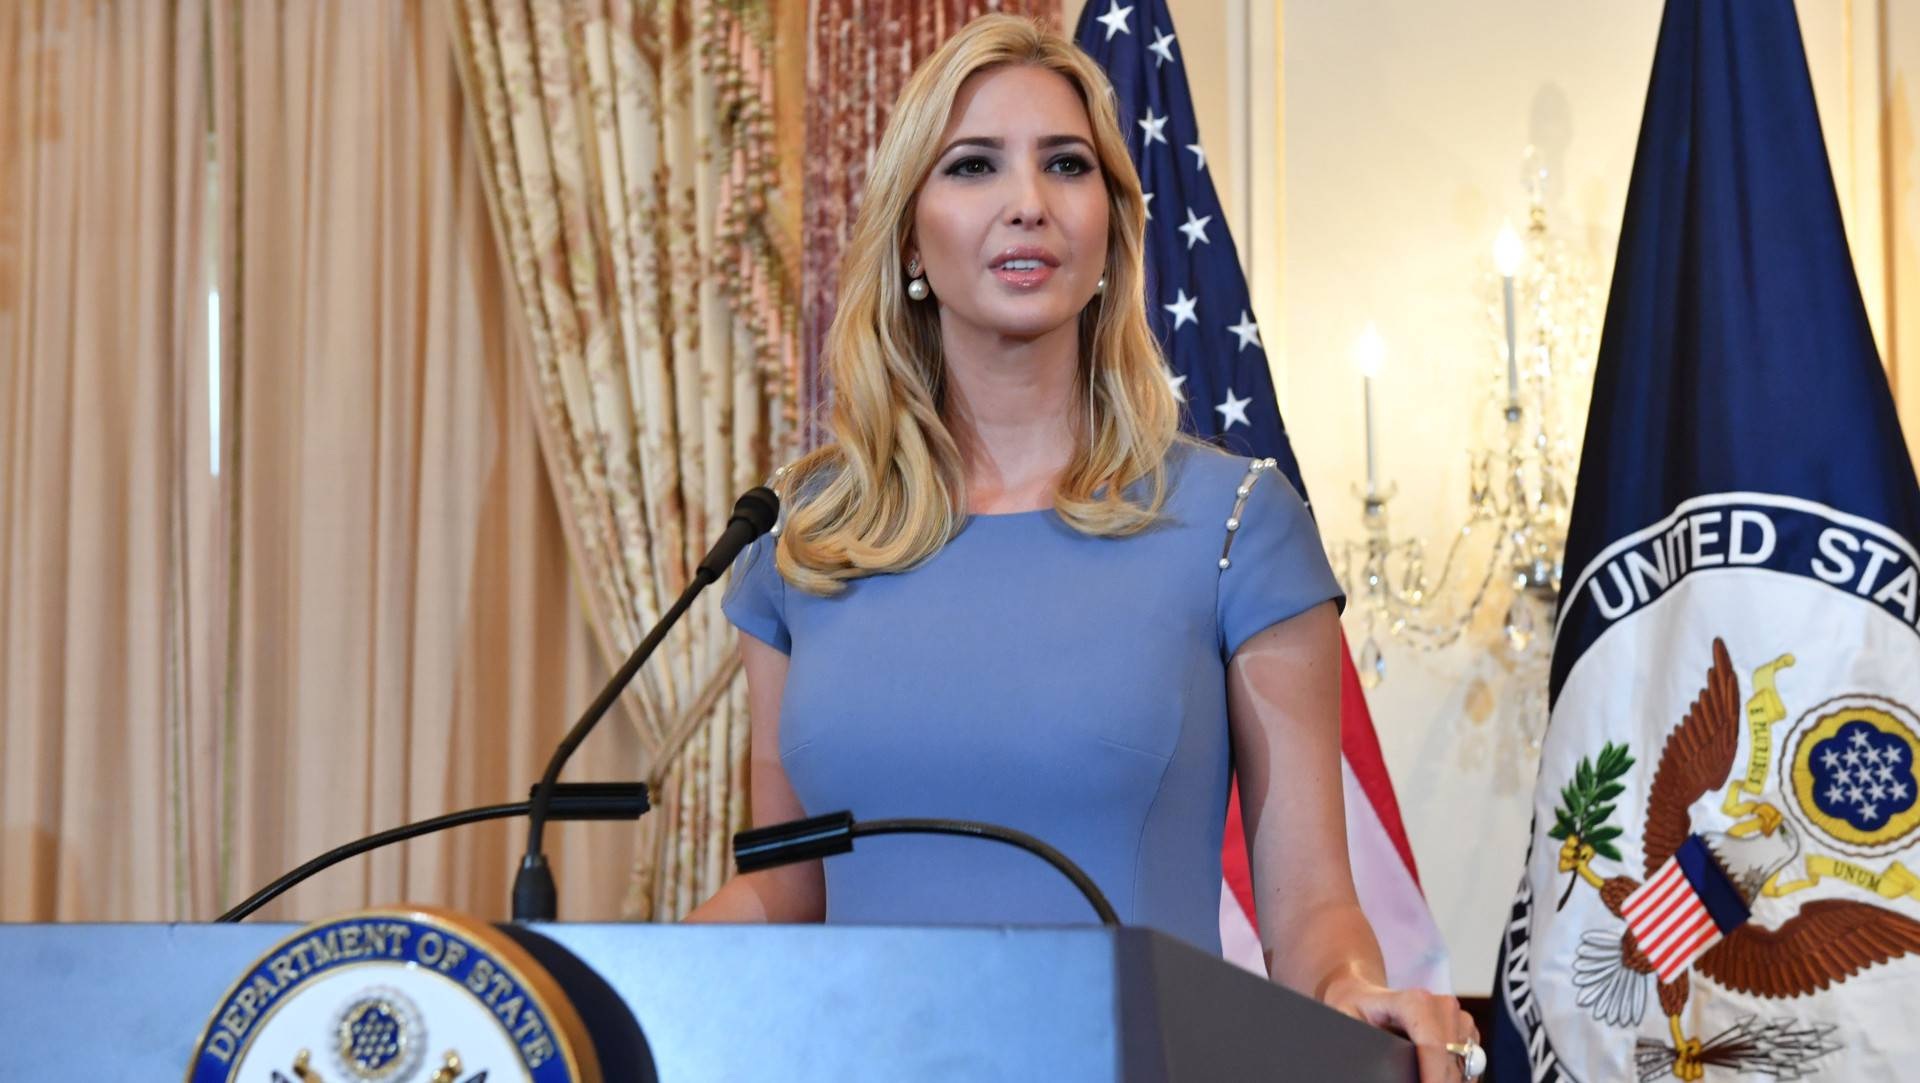 Advisor to the President Ivanka Trump Delivers Remarks at the 2017 Trafficking in Persons Report Launch Ceremony. Ivanka is standing at a podium she is wearing a grey skirt suit.